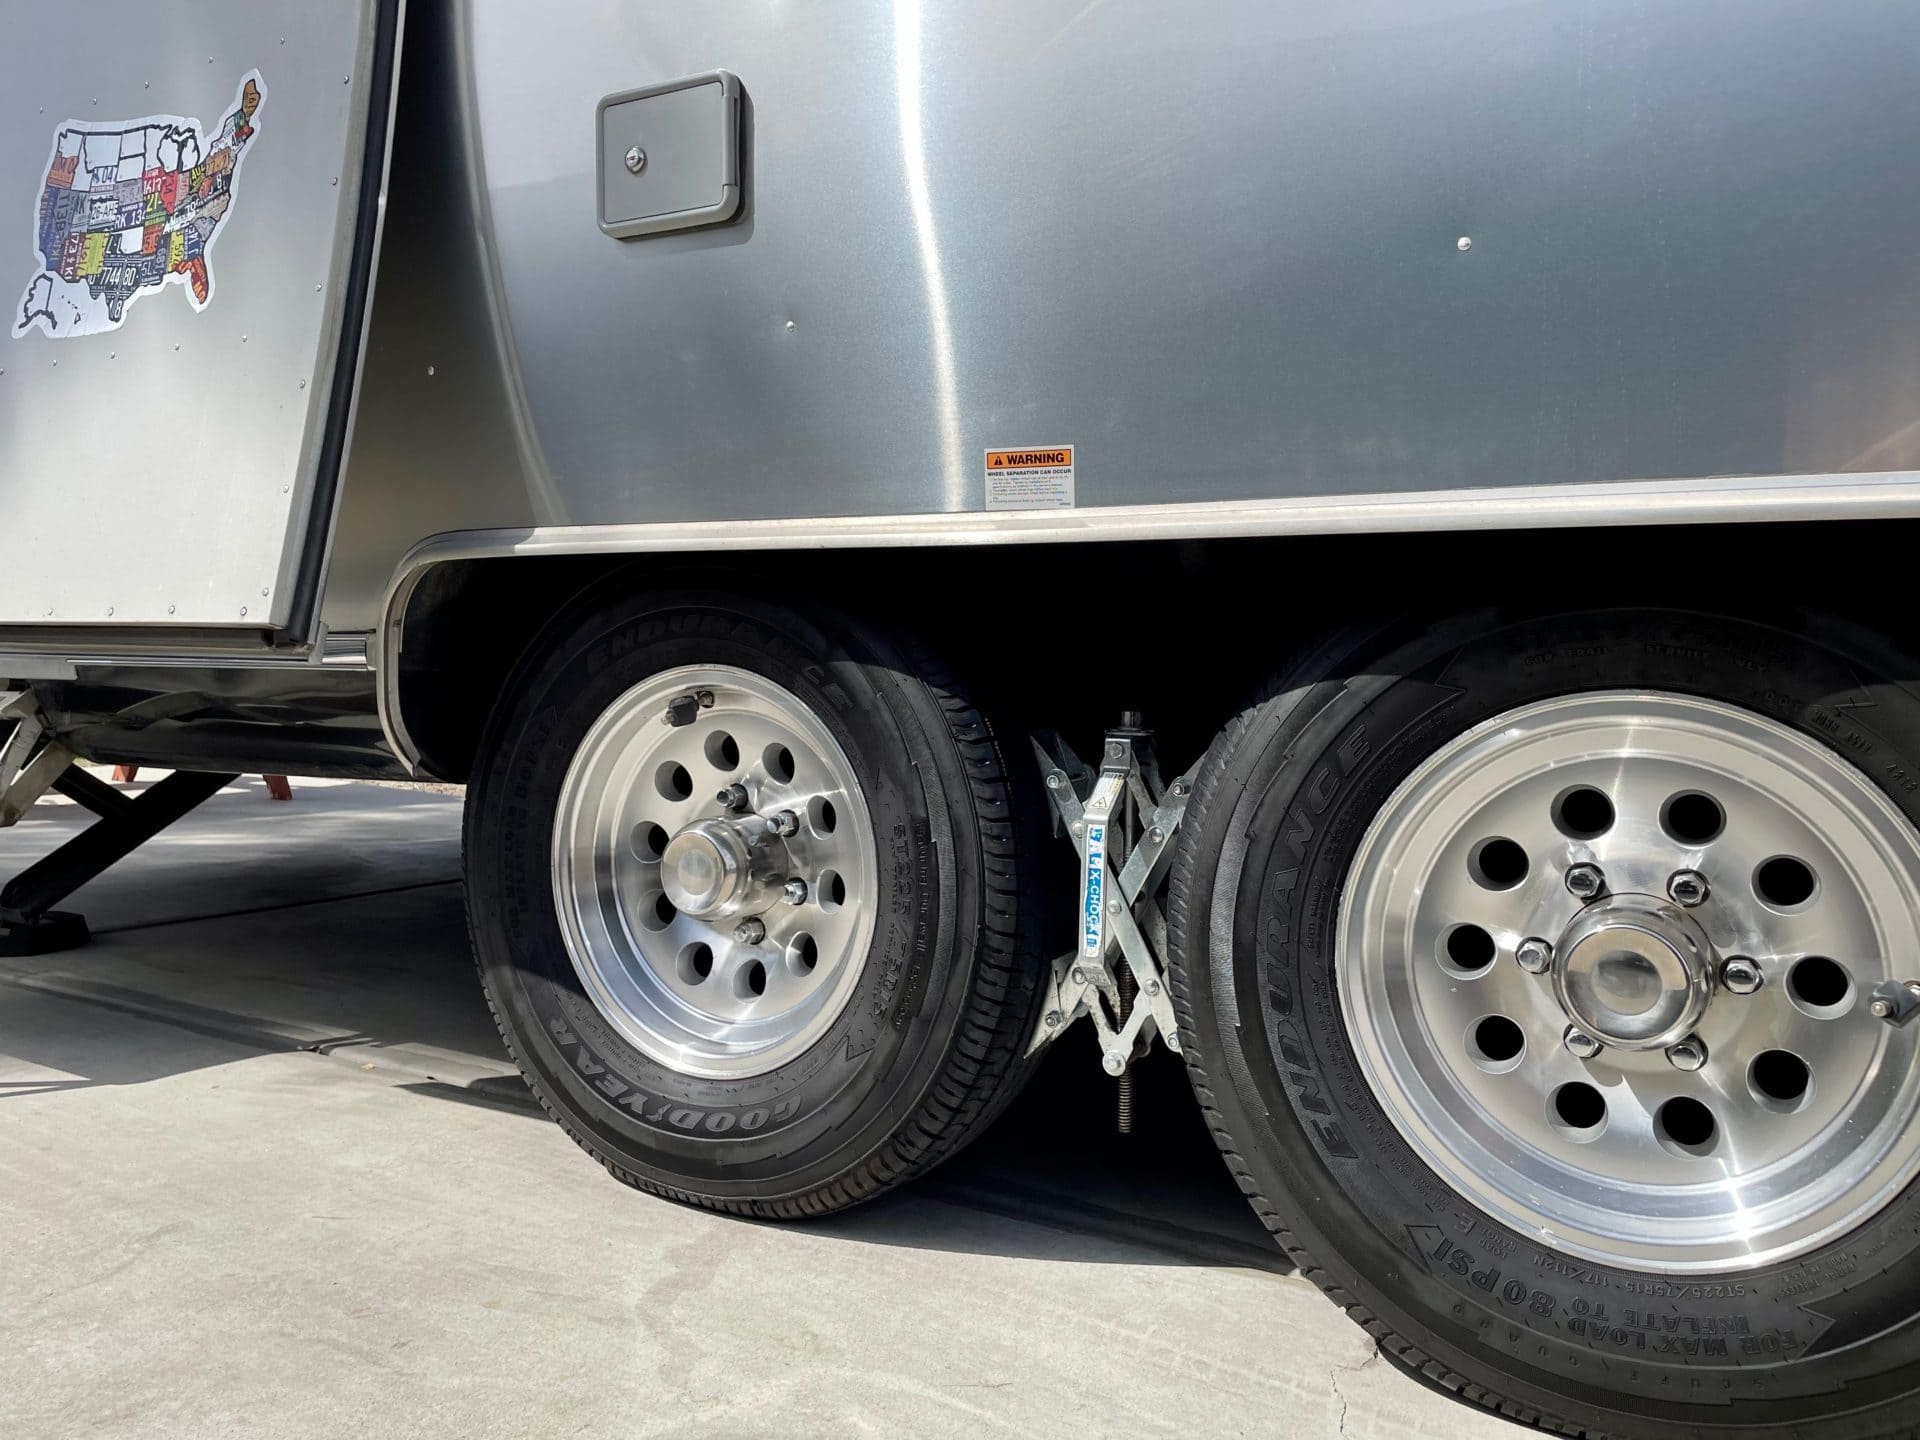 What to Do When Your Tire Pressure Monitoring System (TPMS) Is Causing Your Tires To Leak